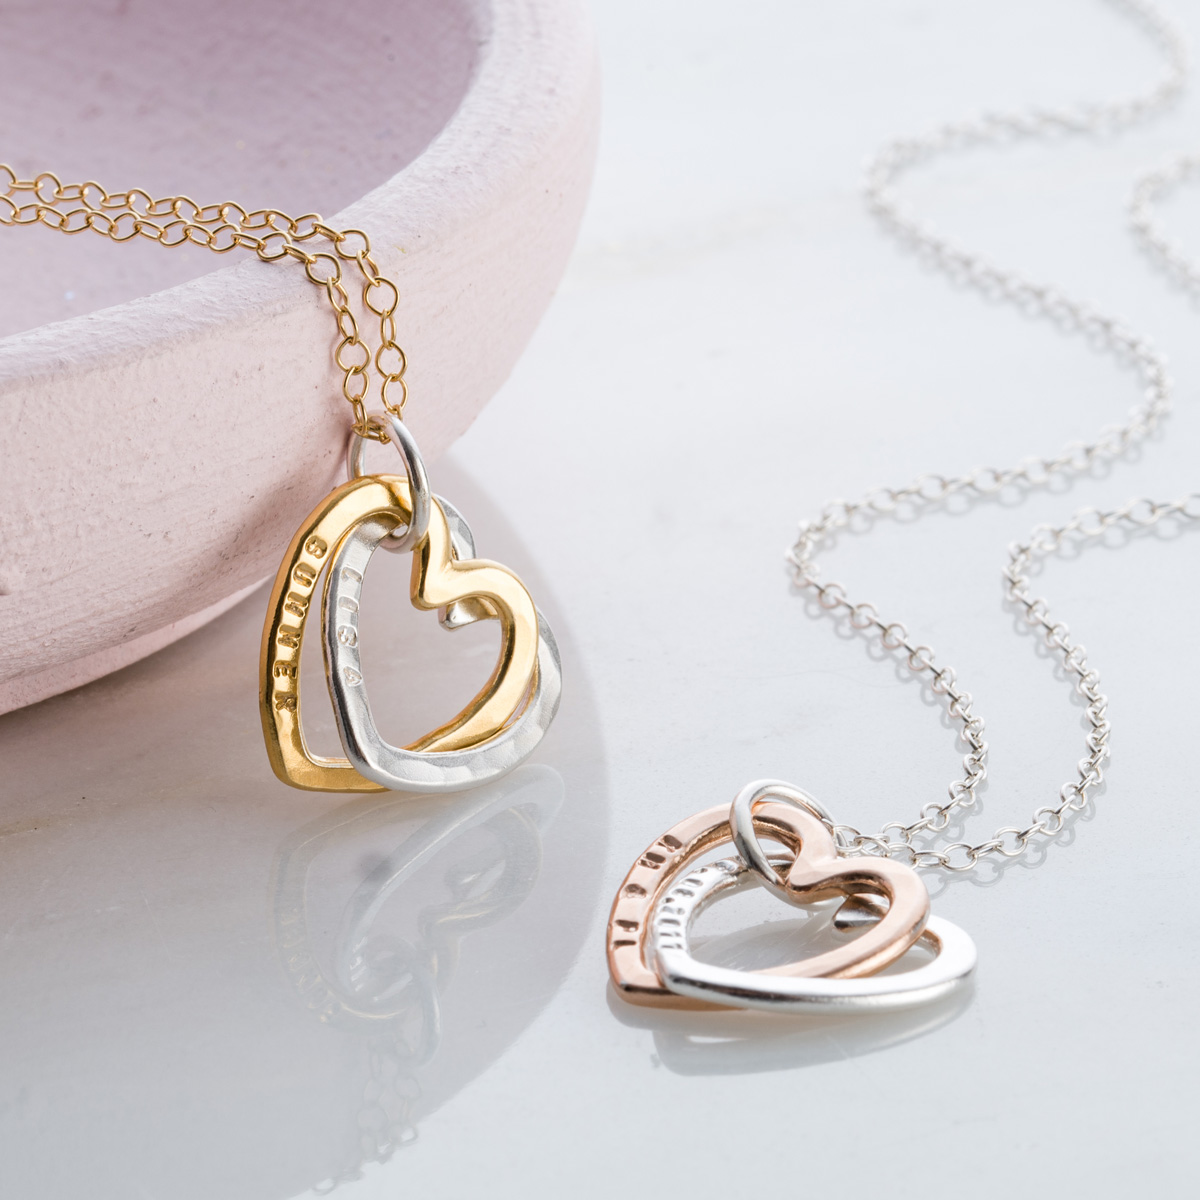 Personalised Posh Totty Designs Interlinking Hearts Necklace With Gold